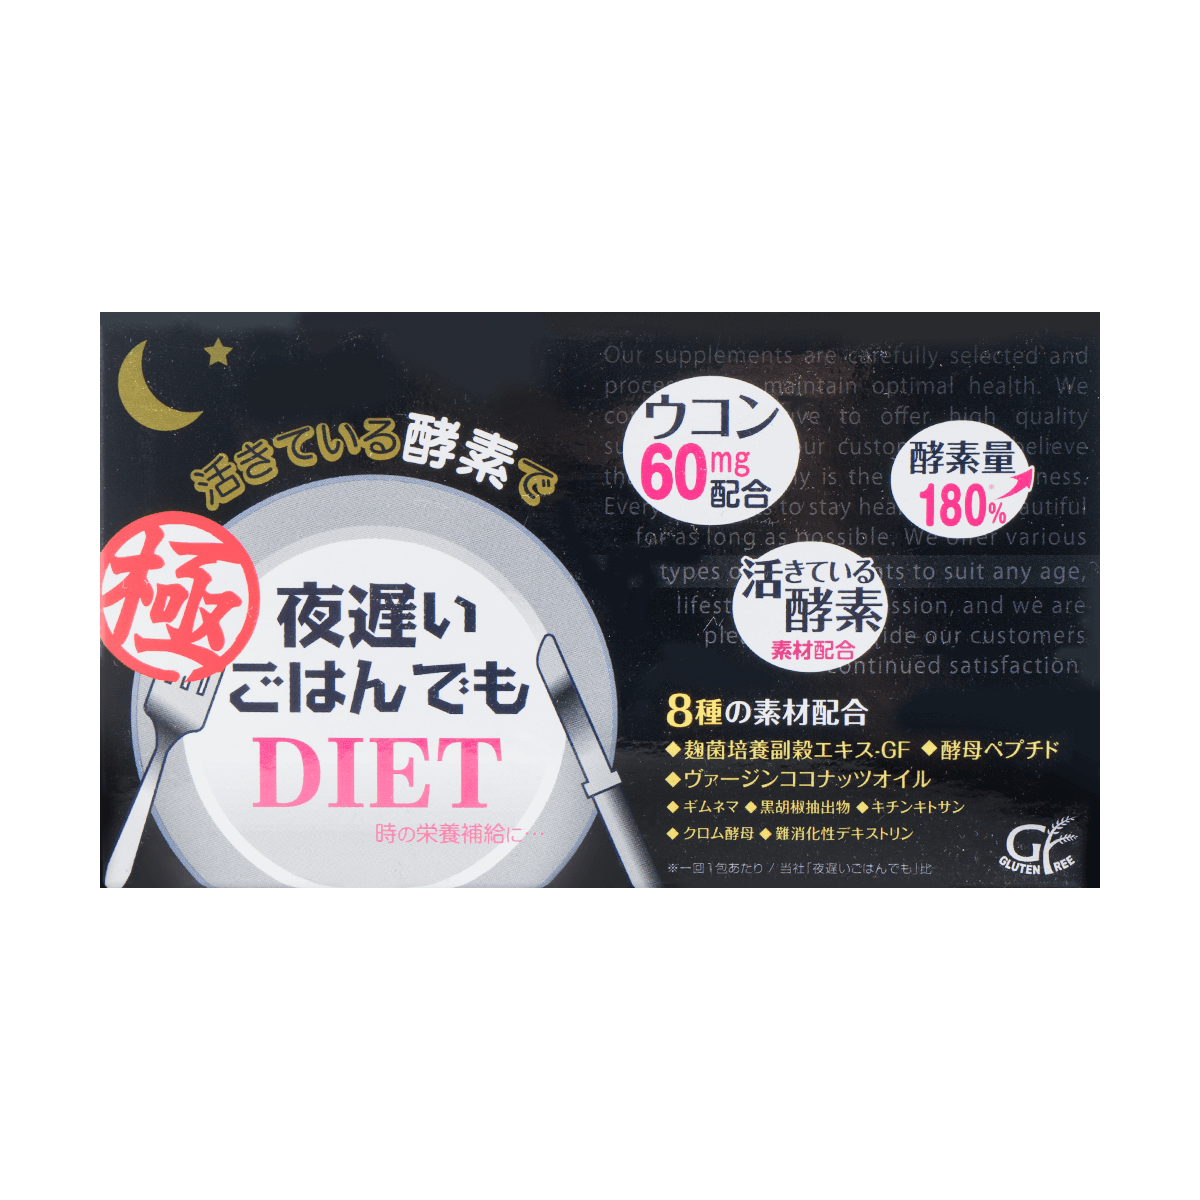 Yamibuy.com:Customer reviews:SHINYAKOSO Yoru Osoi Gohan Demo KIWAMI BLACK 30 Days 45g